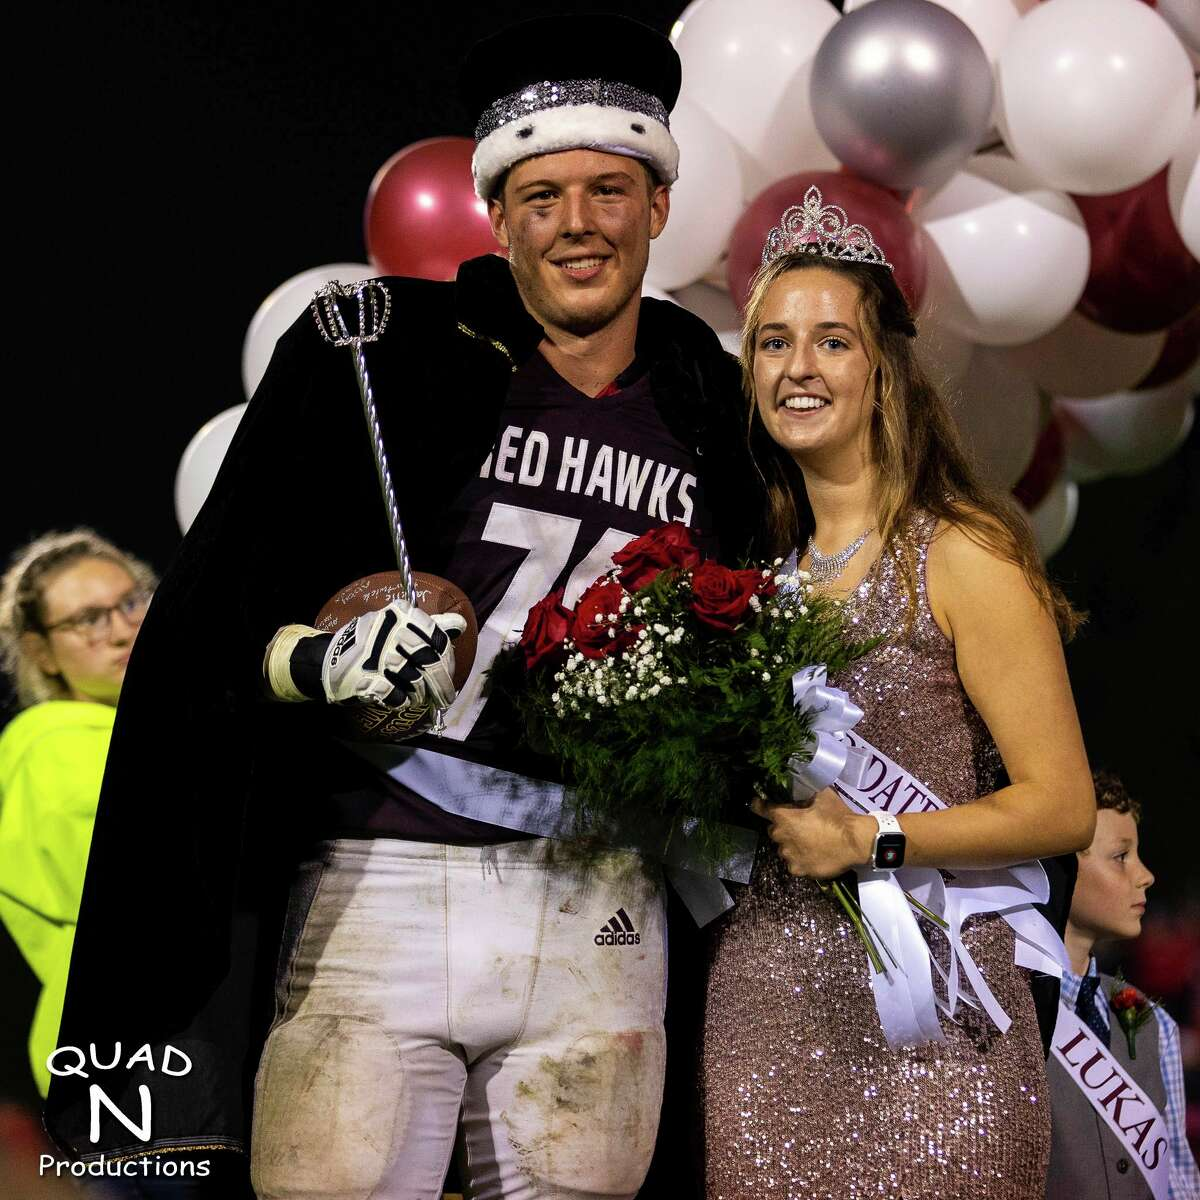 Cass City's homecoming King, Connor Herford and homecoming Queen, Kalee Gray. (Quad N Productions/For the Tribune)